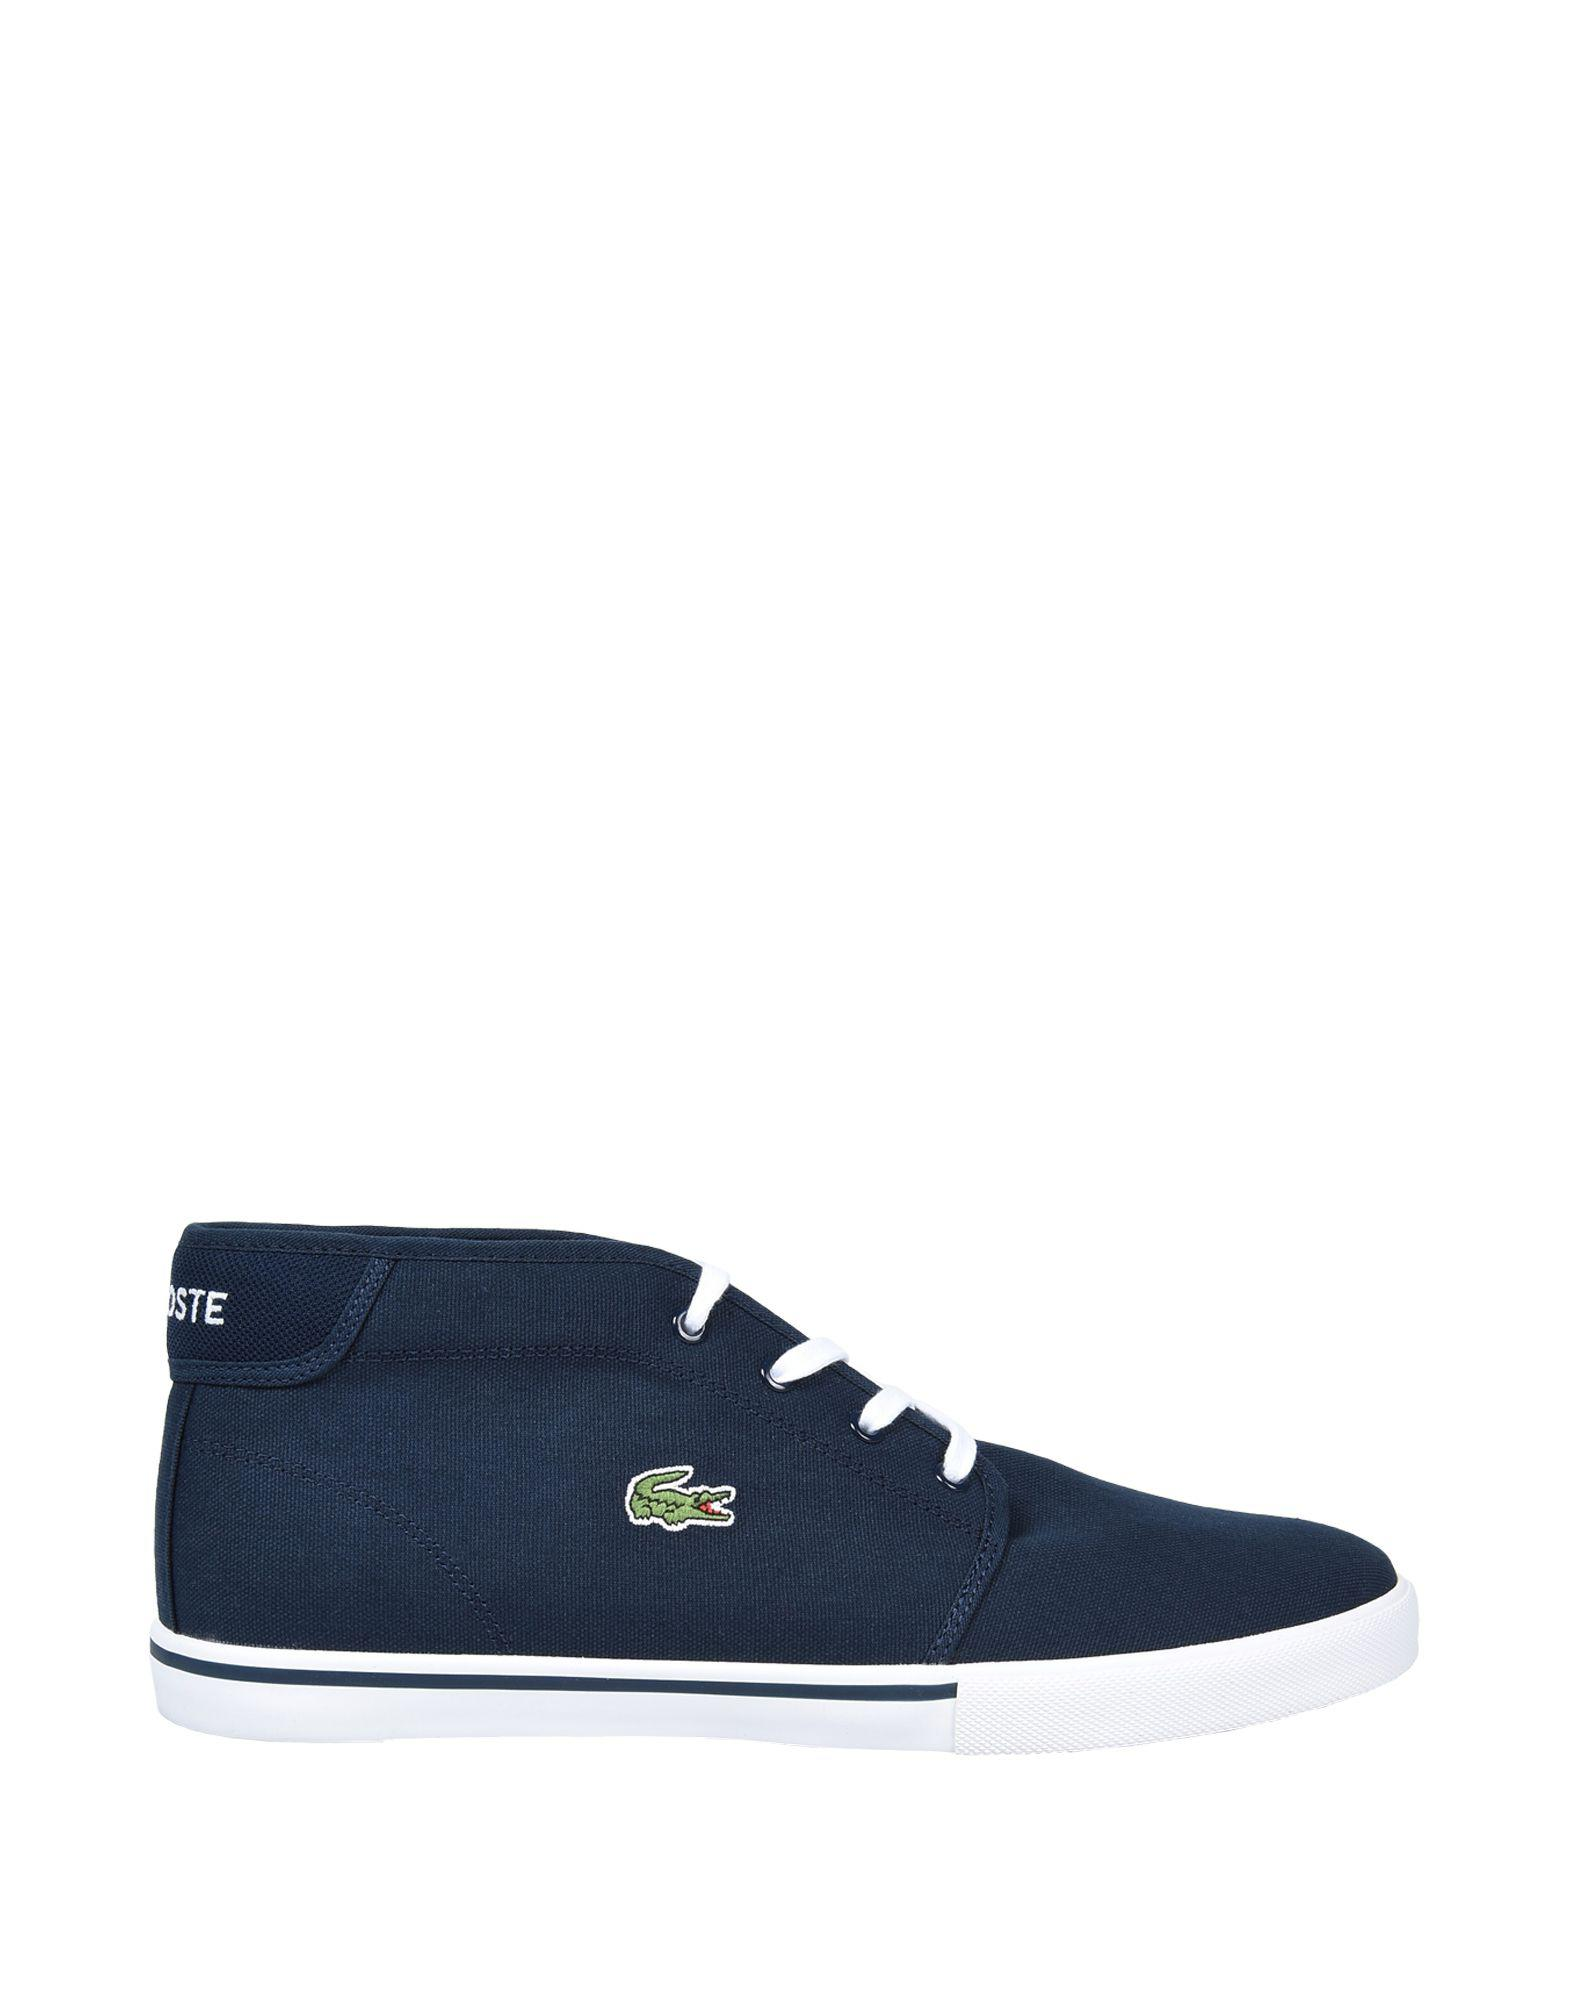 b45fa35e6 Lacoste Sport High-tops   Sneakers in Blue for Men - Lyst